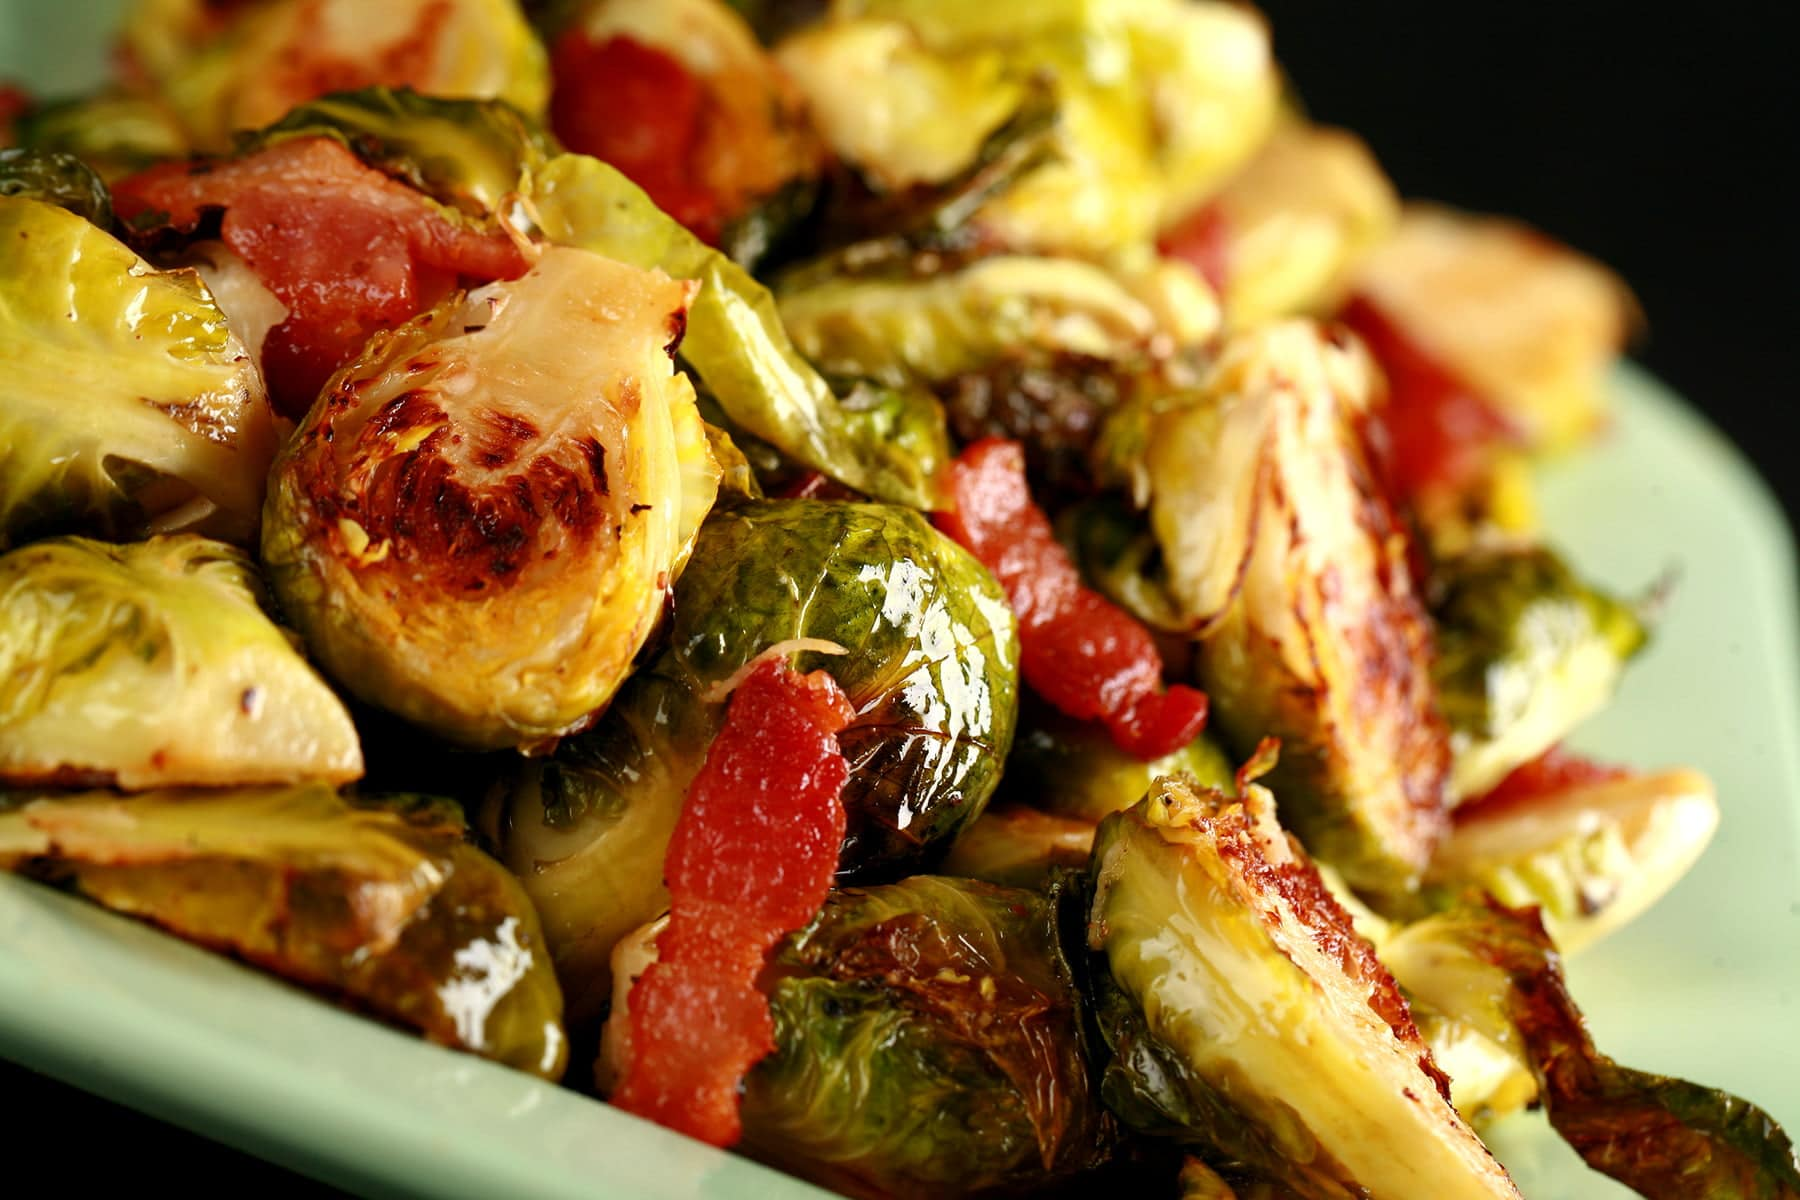 A pale green platter, mounded with roasted Brussels Sprouts. Chopped Bacon is visible throughout.